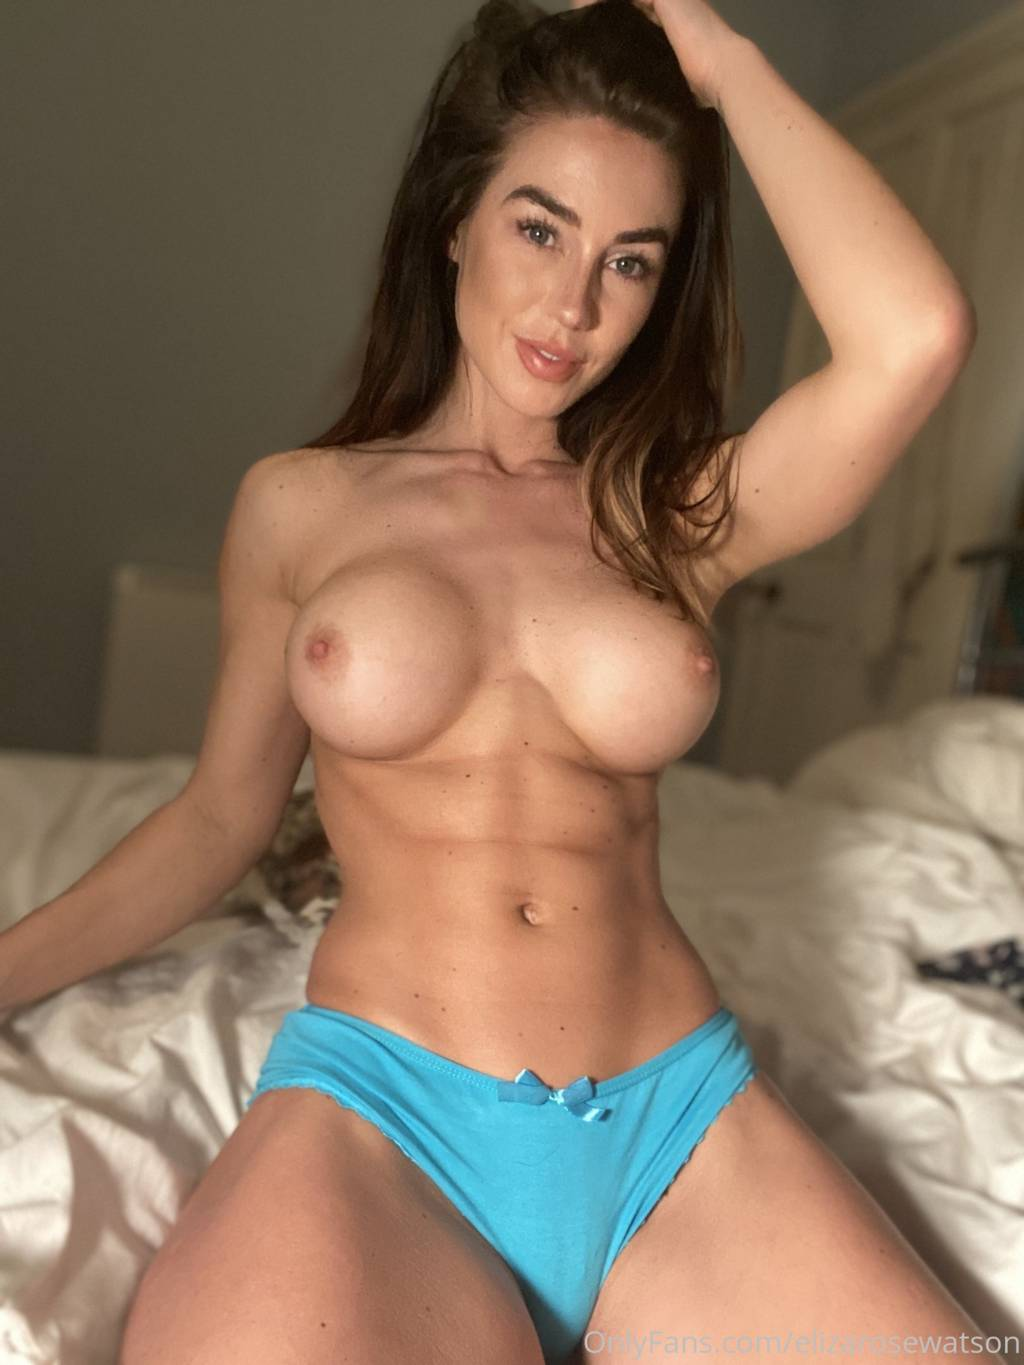 Eliza Rose Watson Nude Leaked Videos and Naked Pics! 117